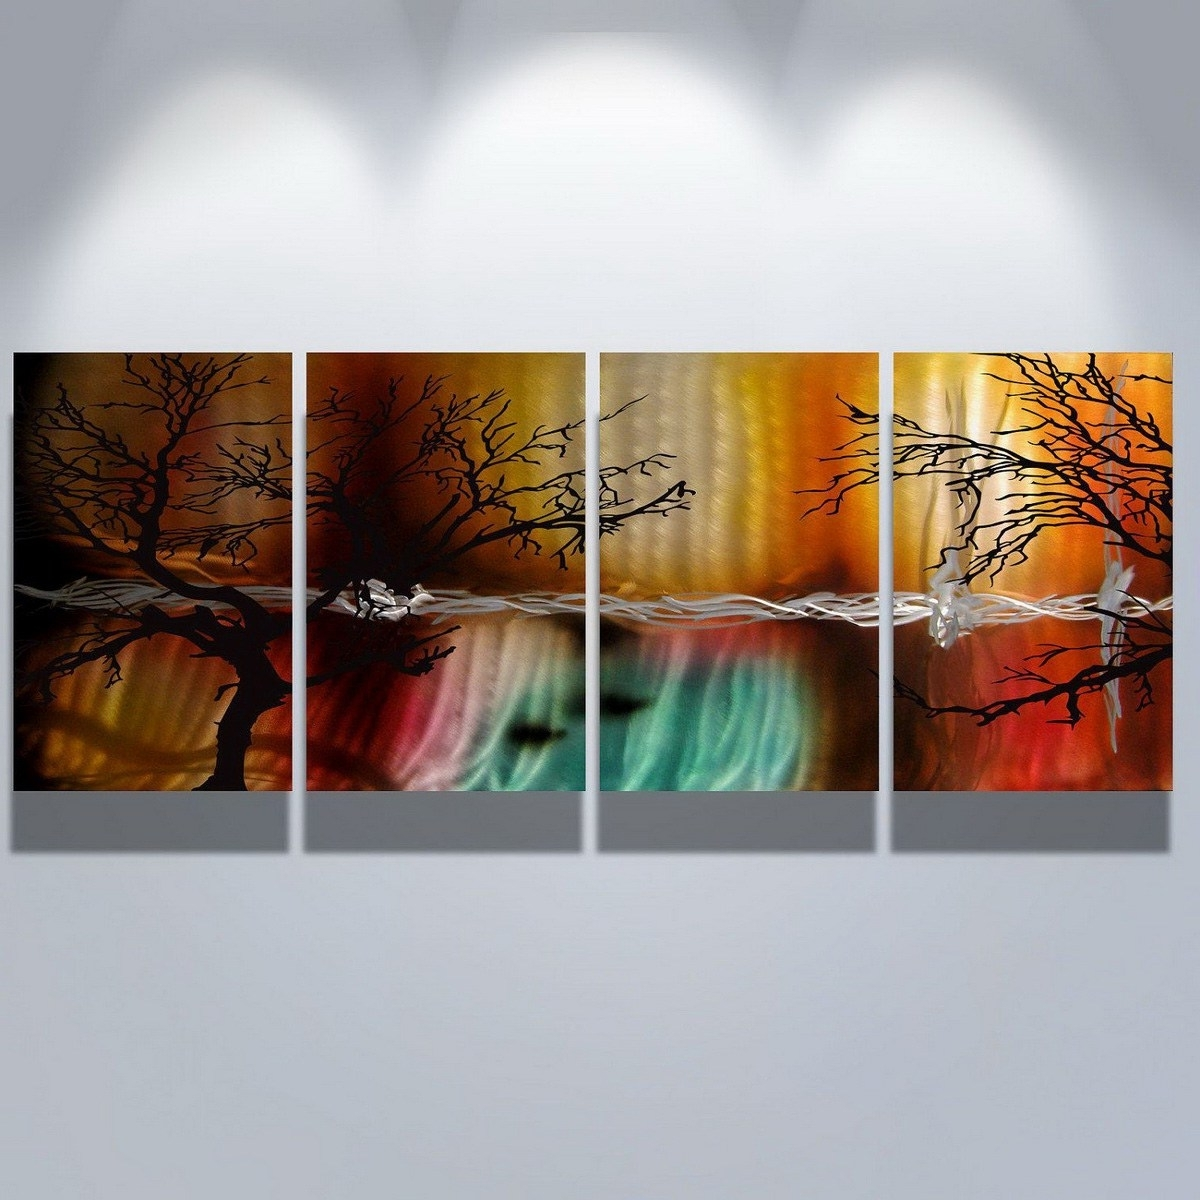 Affordable Wall Art Intended For Recent Affordable Wall Art – Elitflat (View 8 of 20)